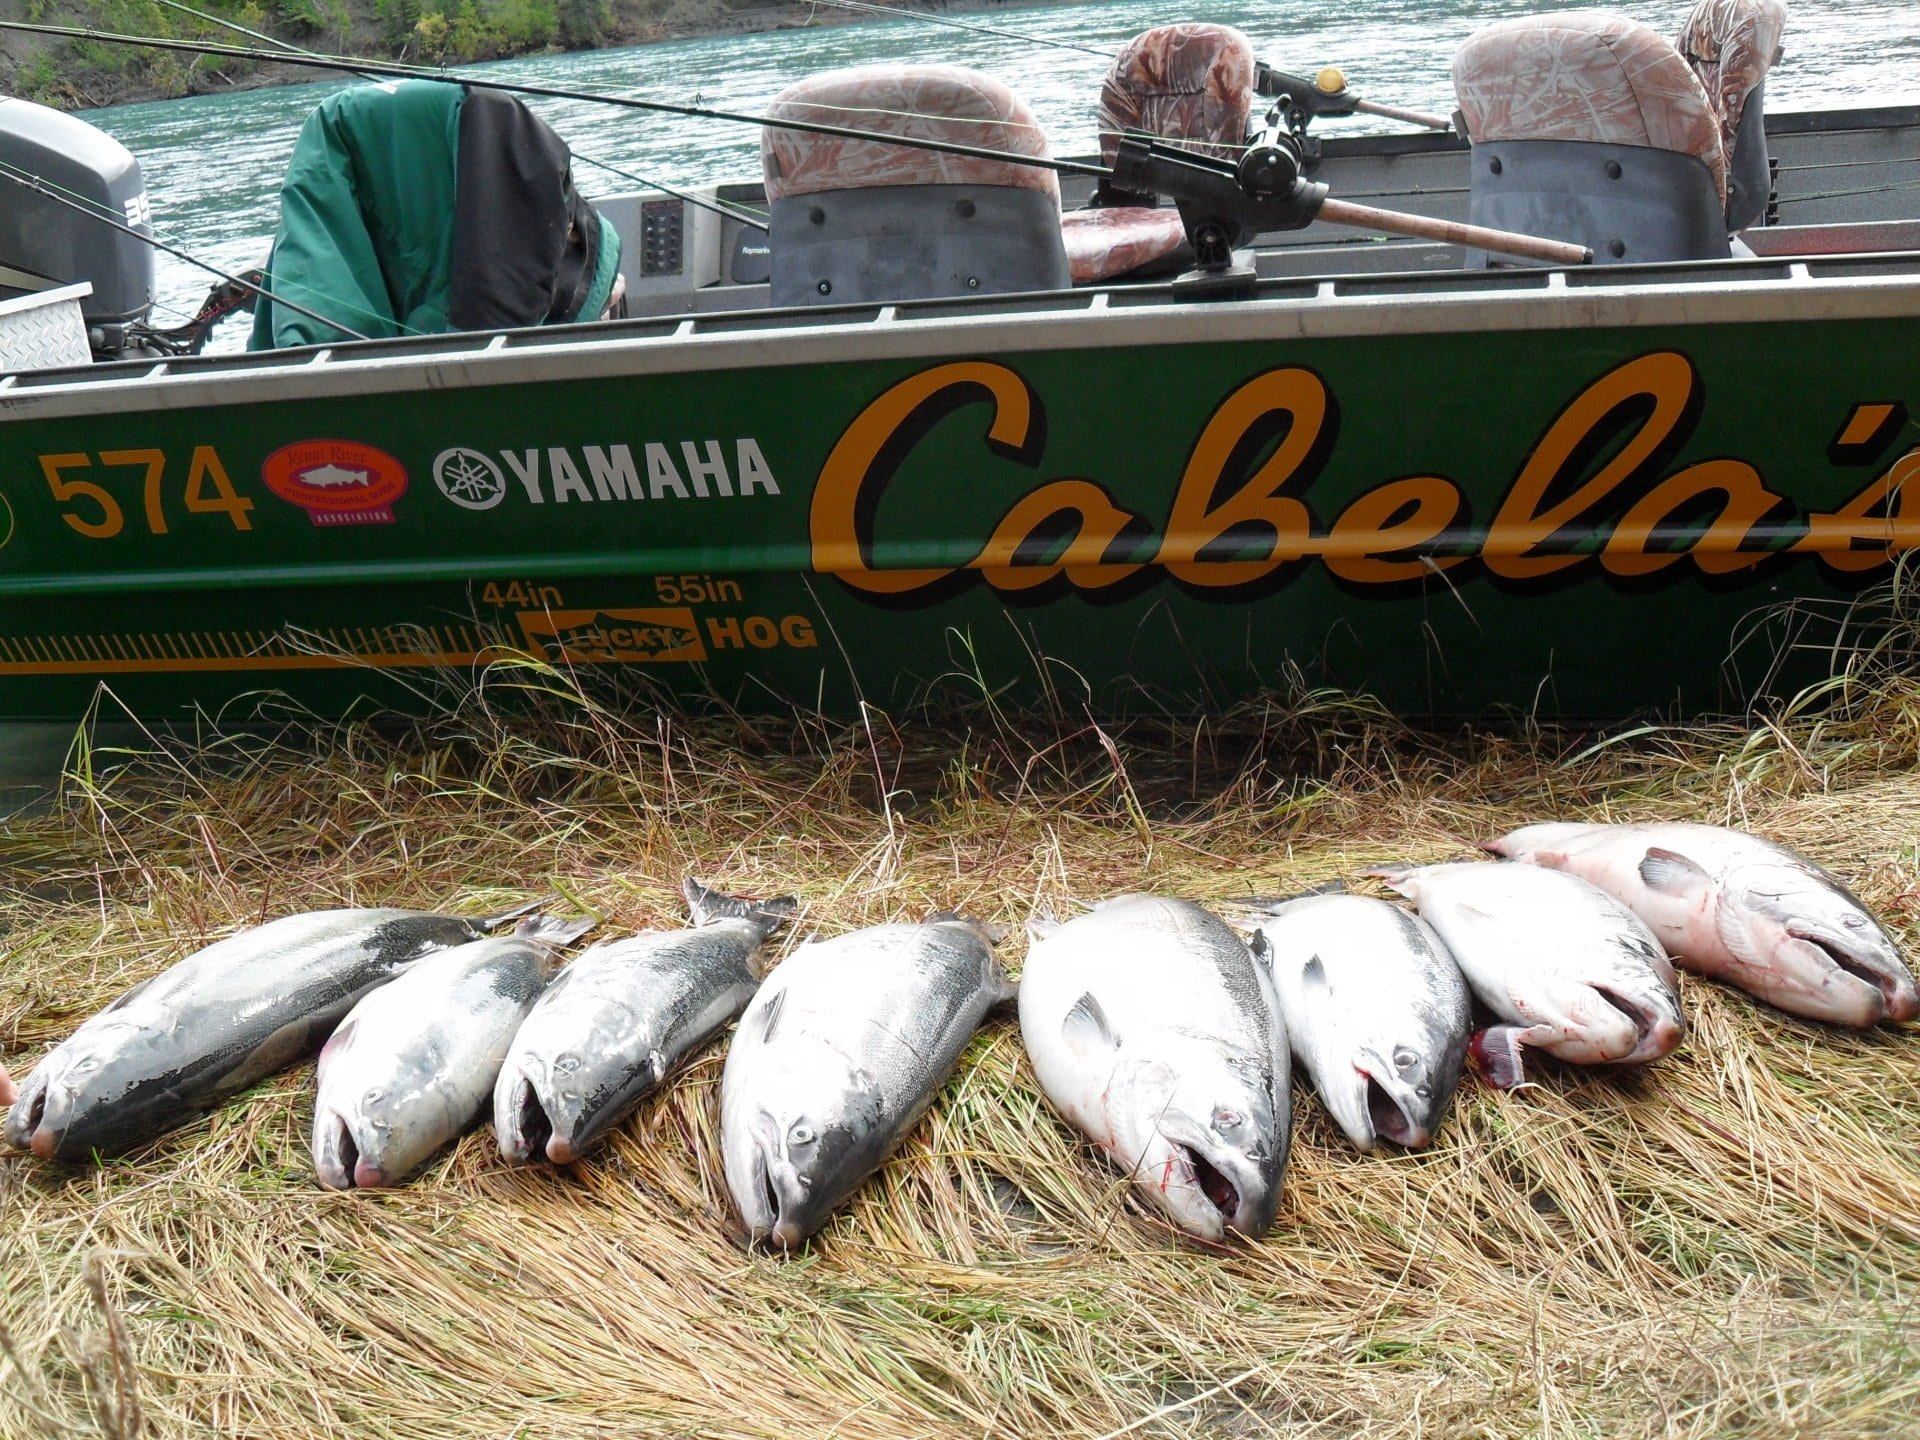 caught fish lined up in front of fishing boat